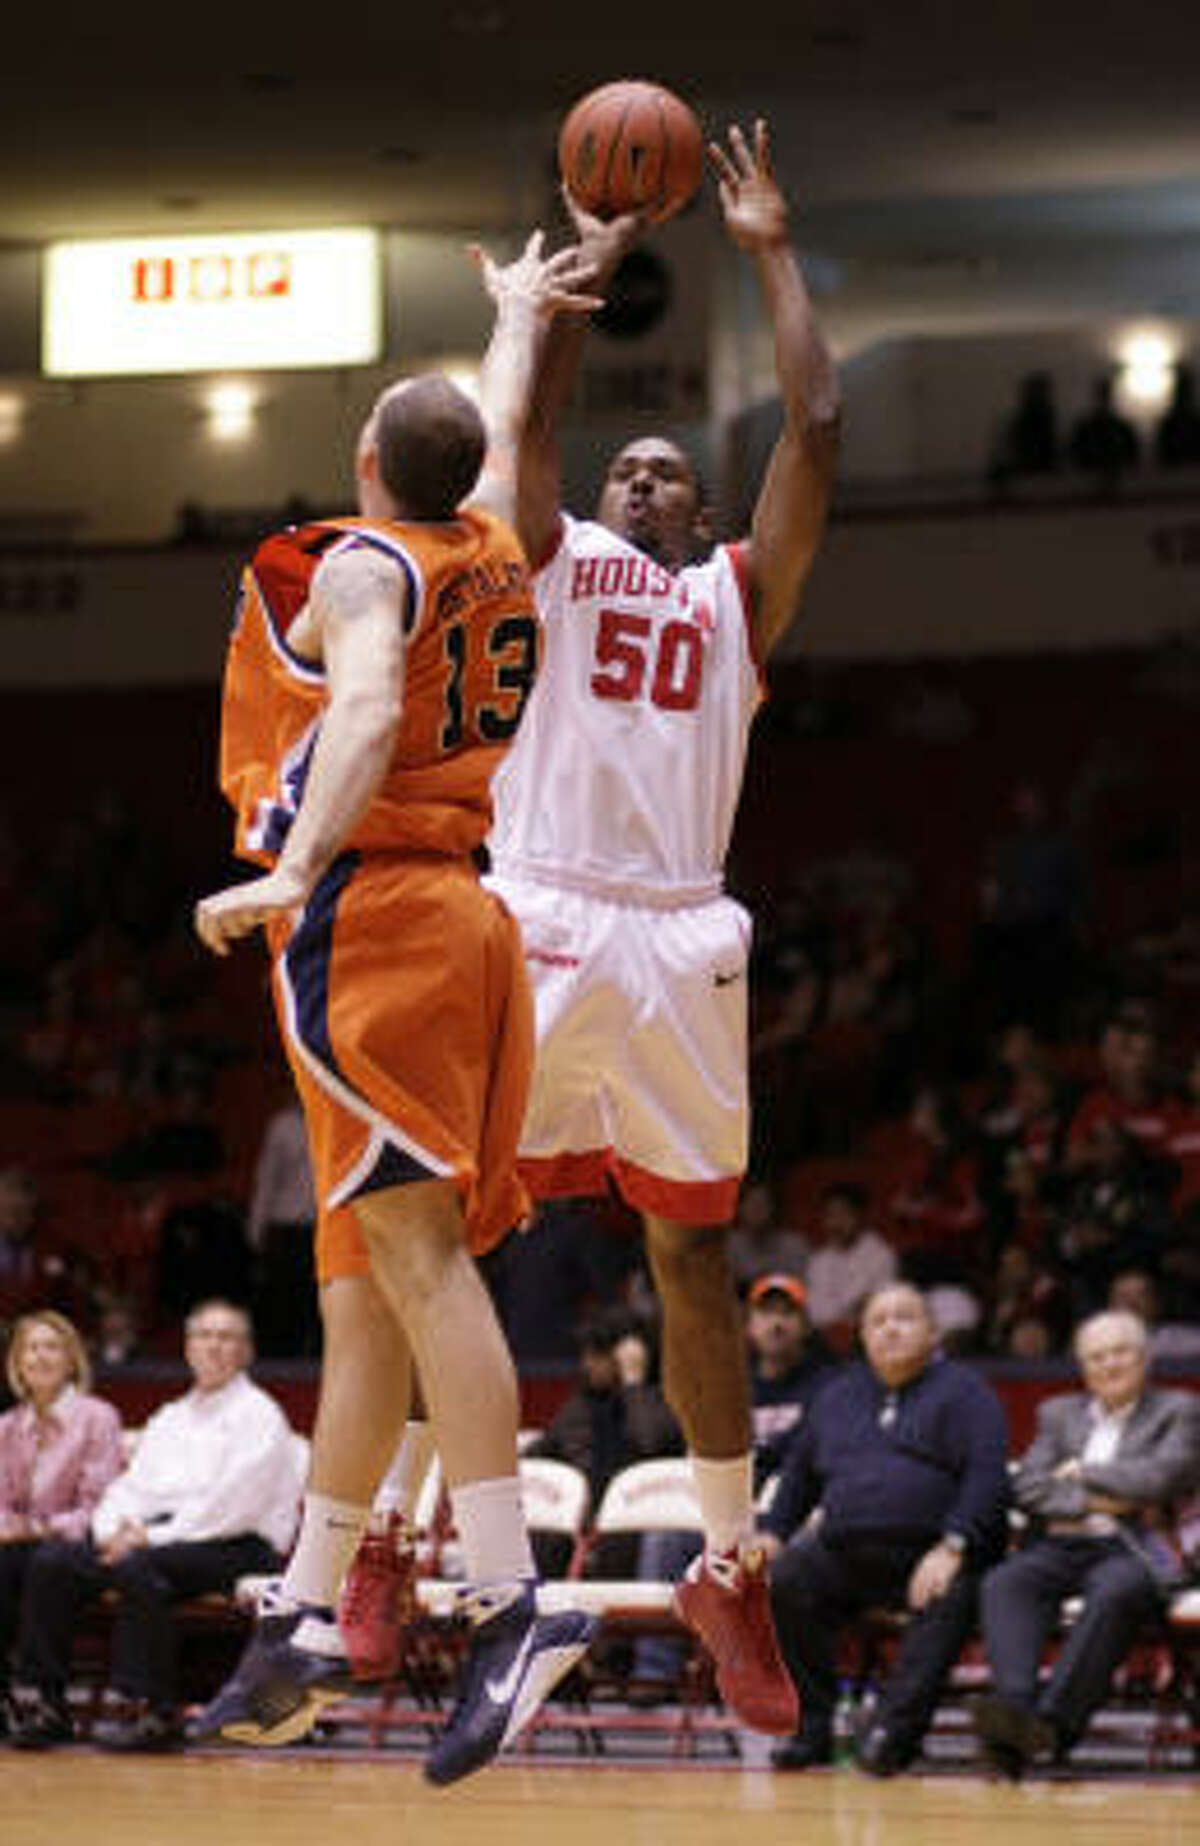 UH center Marcus Cousin shoots over UTEP's Wayen Portalatin during the first half of Wednesday's game. UTEP won 62-55.